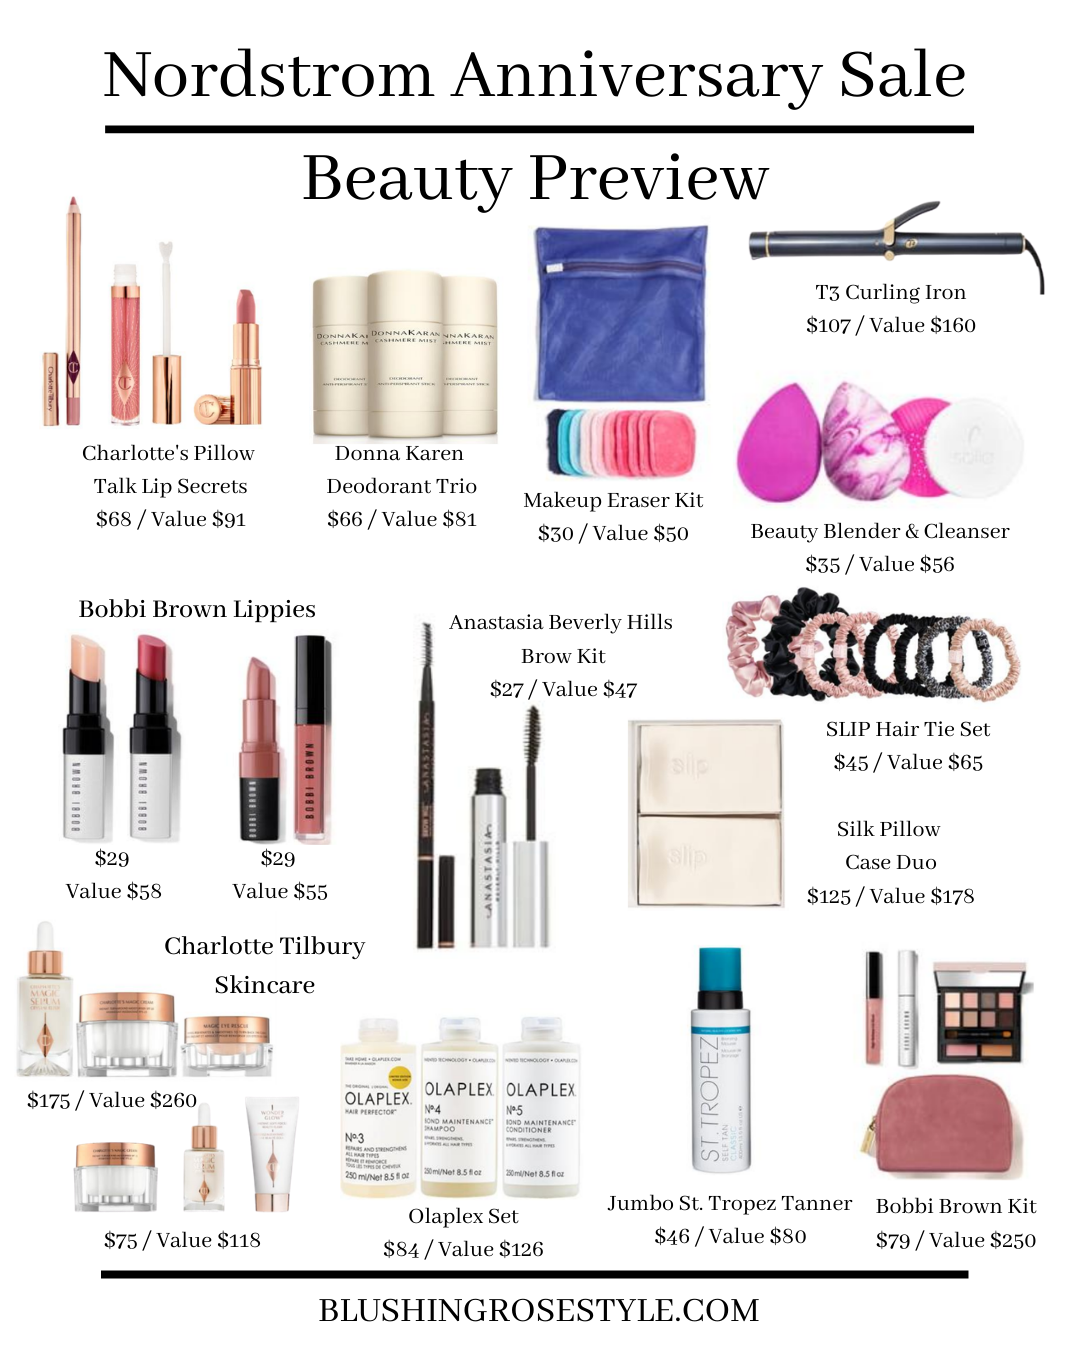 Nordstrom Anniversary Sale 2020 – Beauty Preview